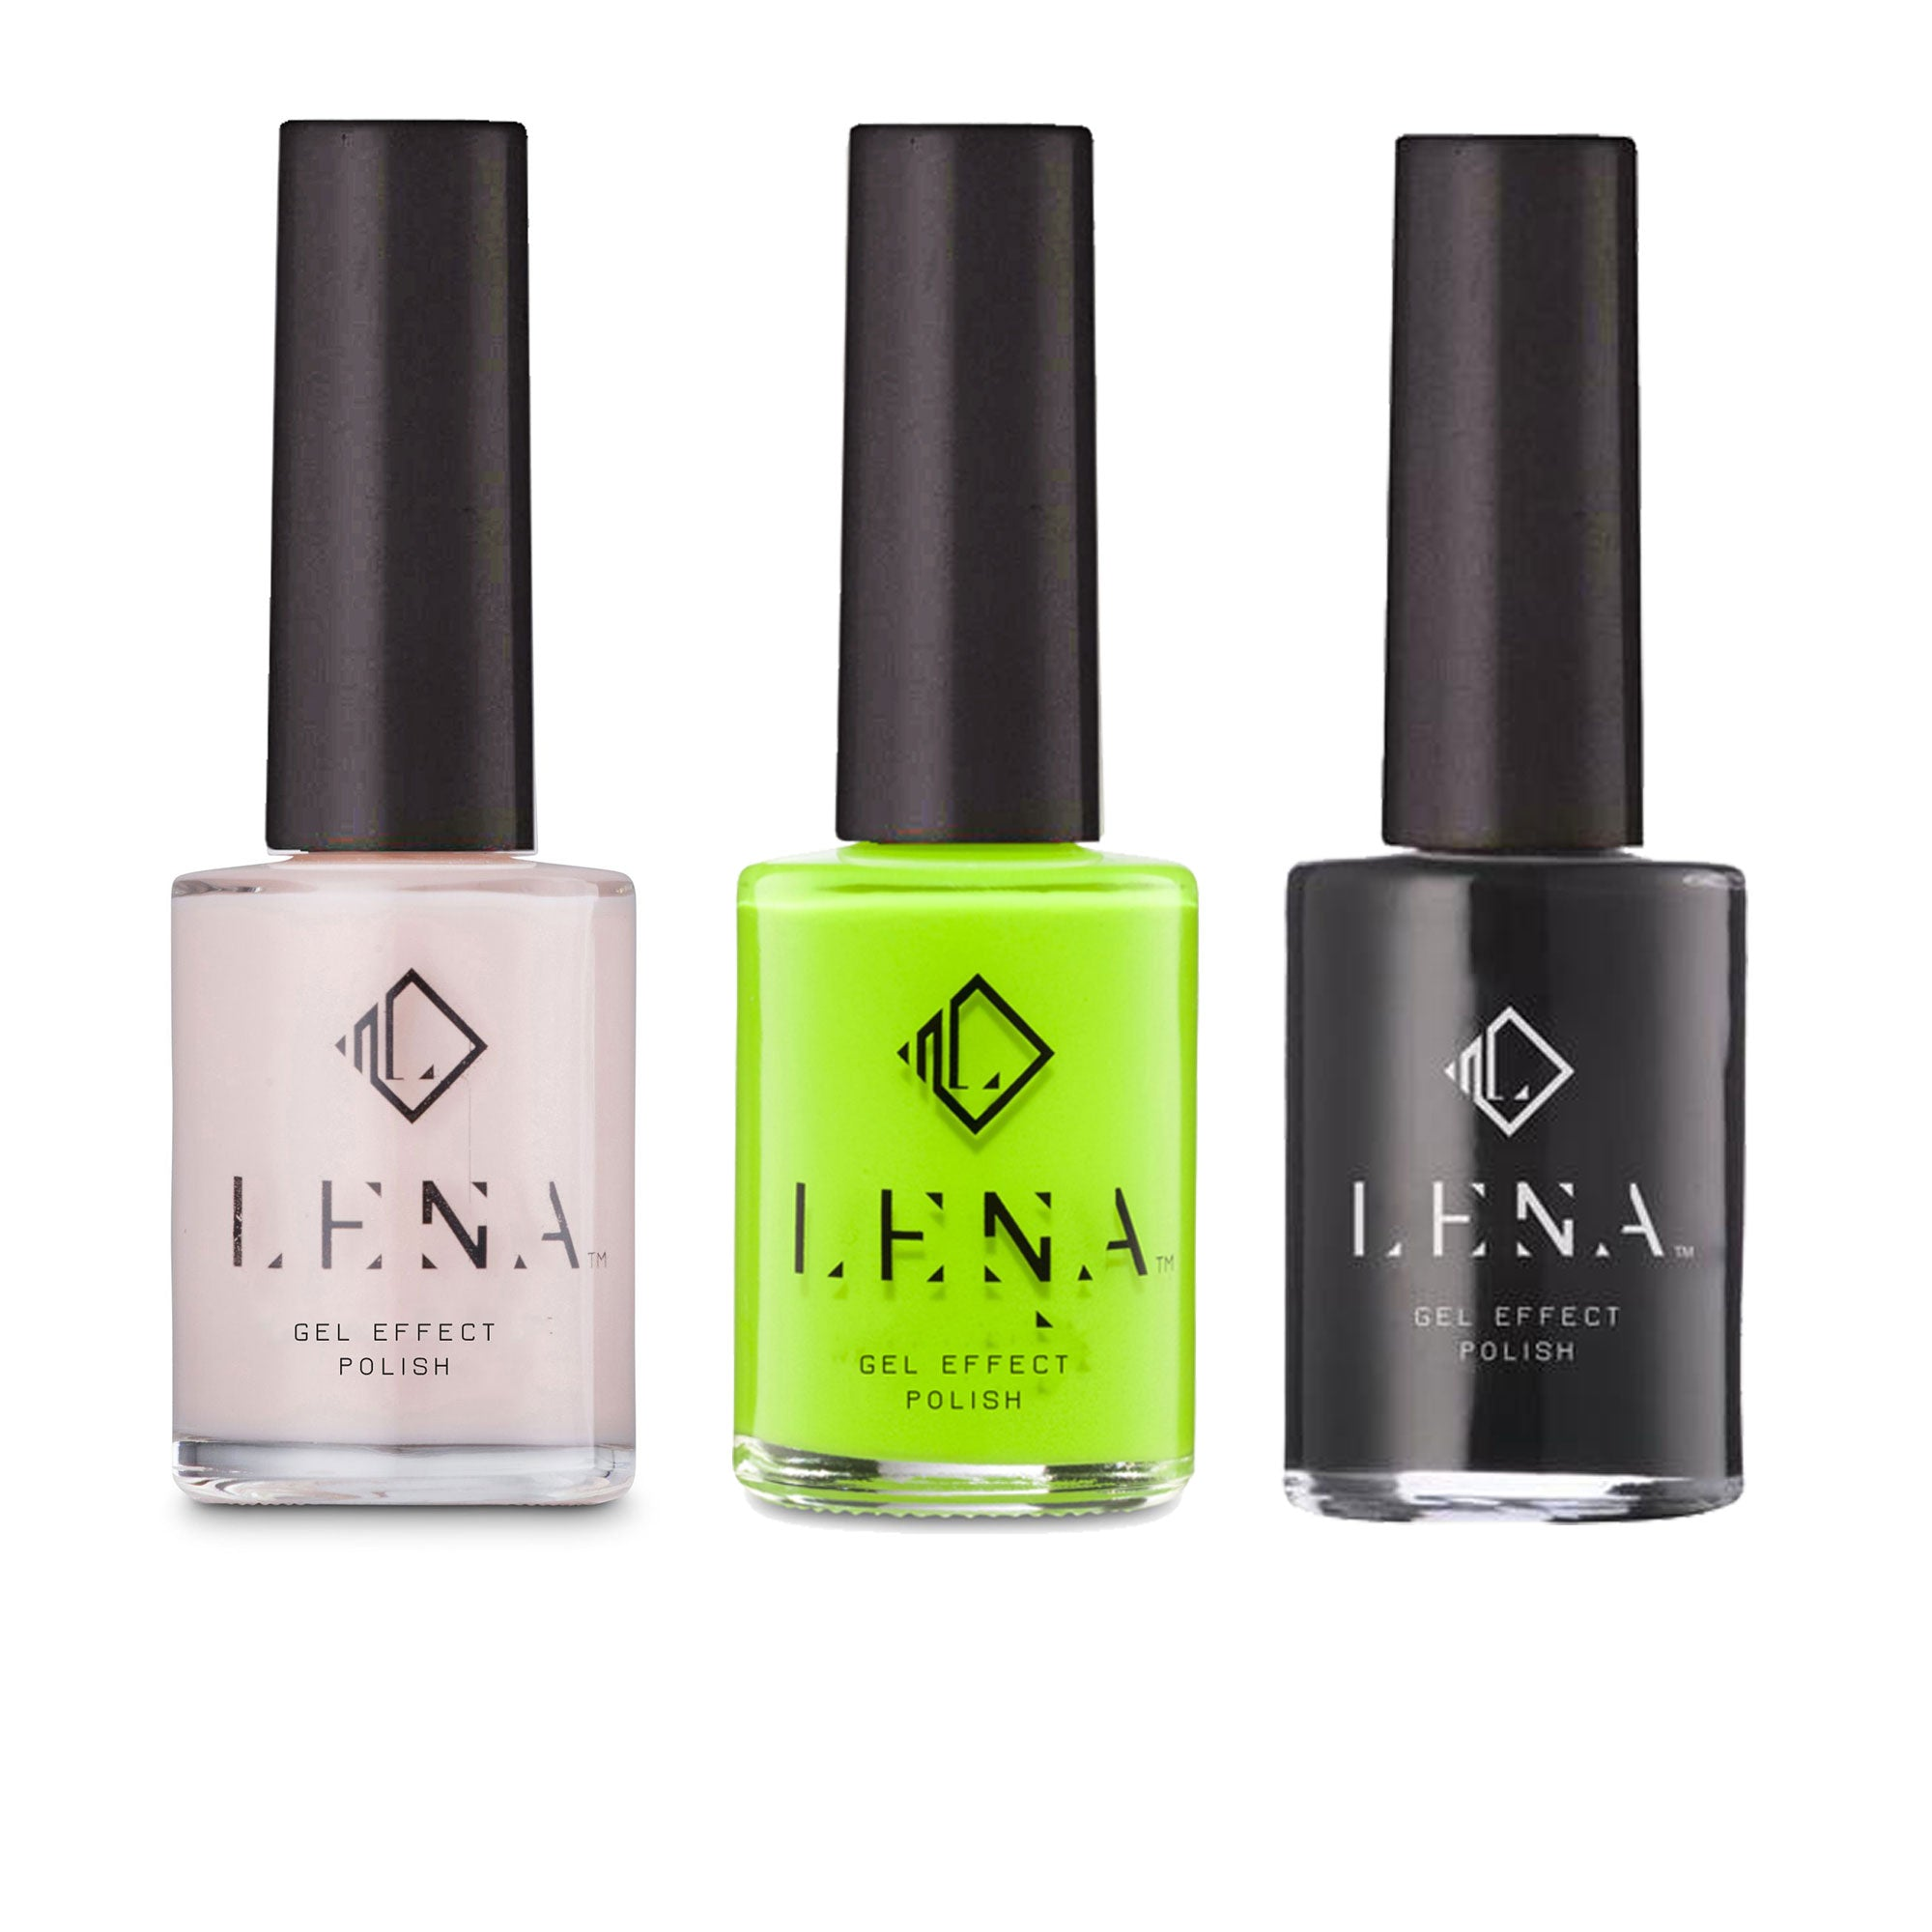 NEON Tip French Manicure Set